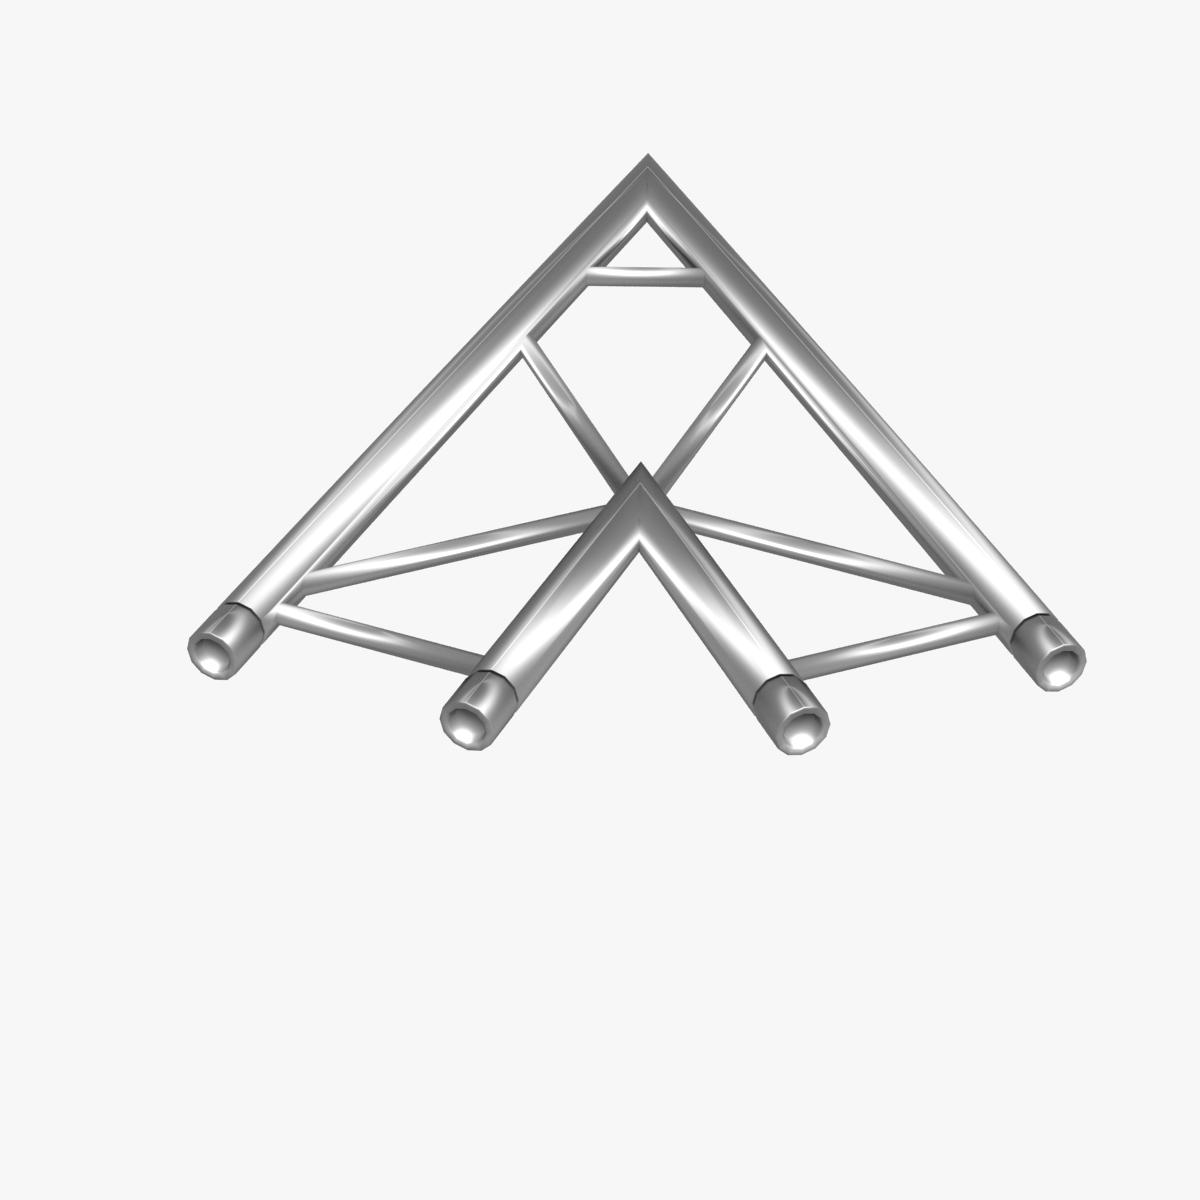 beam trusses (collection 24 modular pieces) 3d model 3ds max dxf fbx bmp blend c4d dae other obj 268747